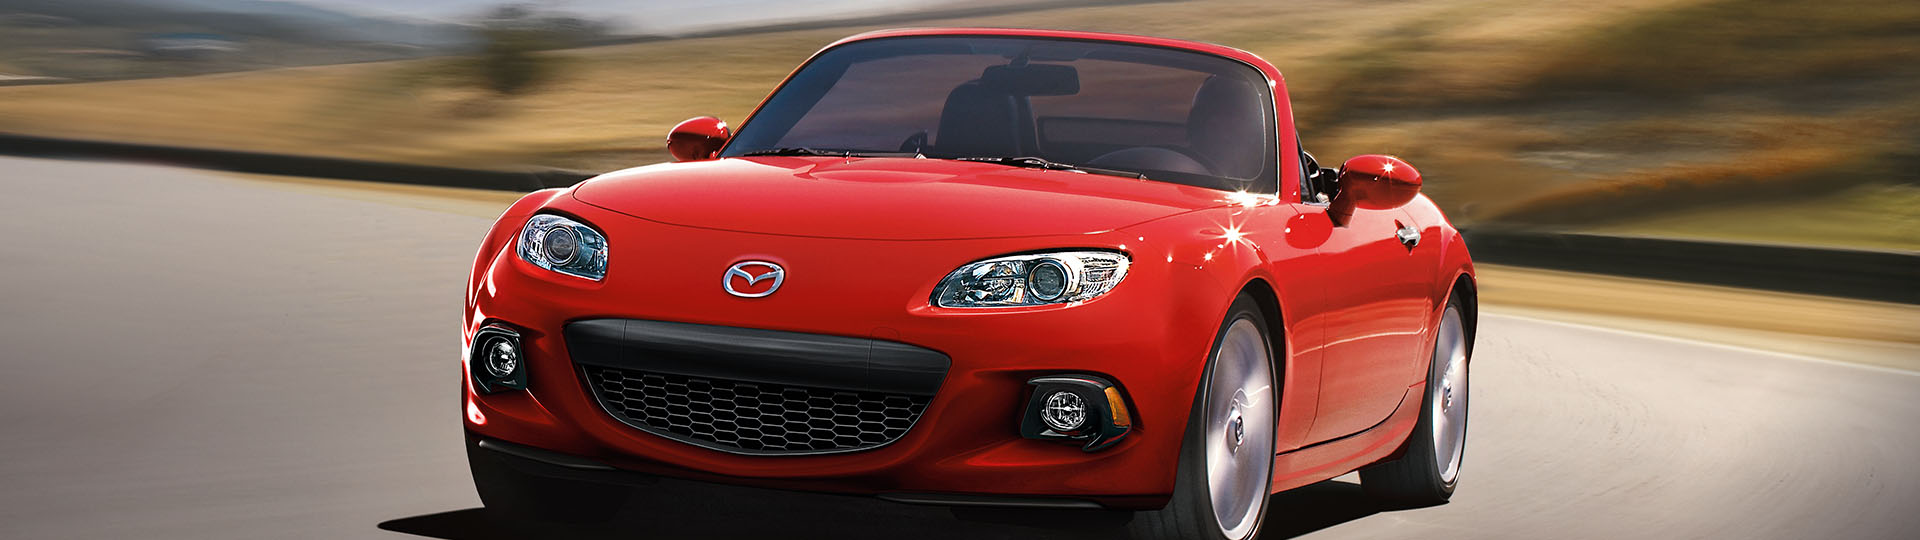 Mazda MX-5, a highly sought after vehicle - Angevaare Mazda